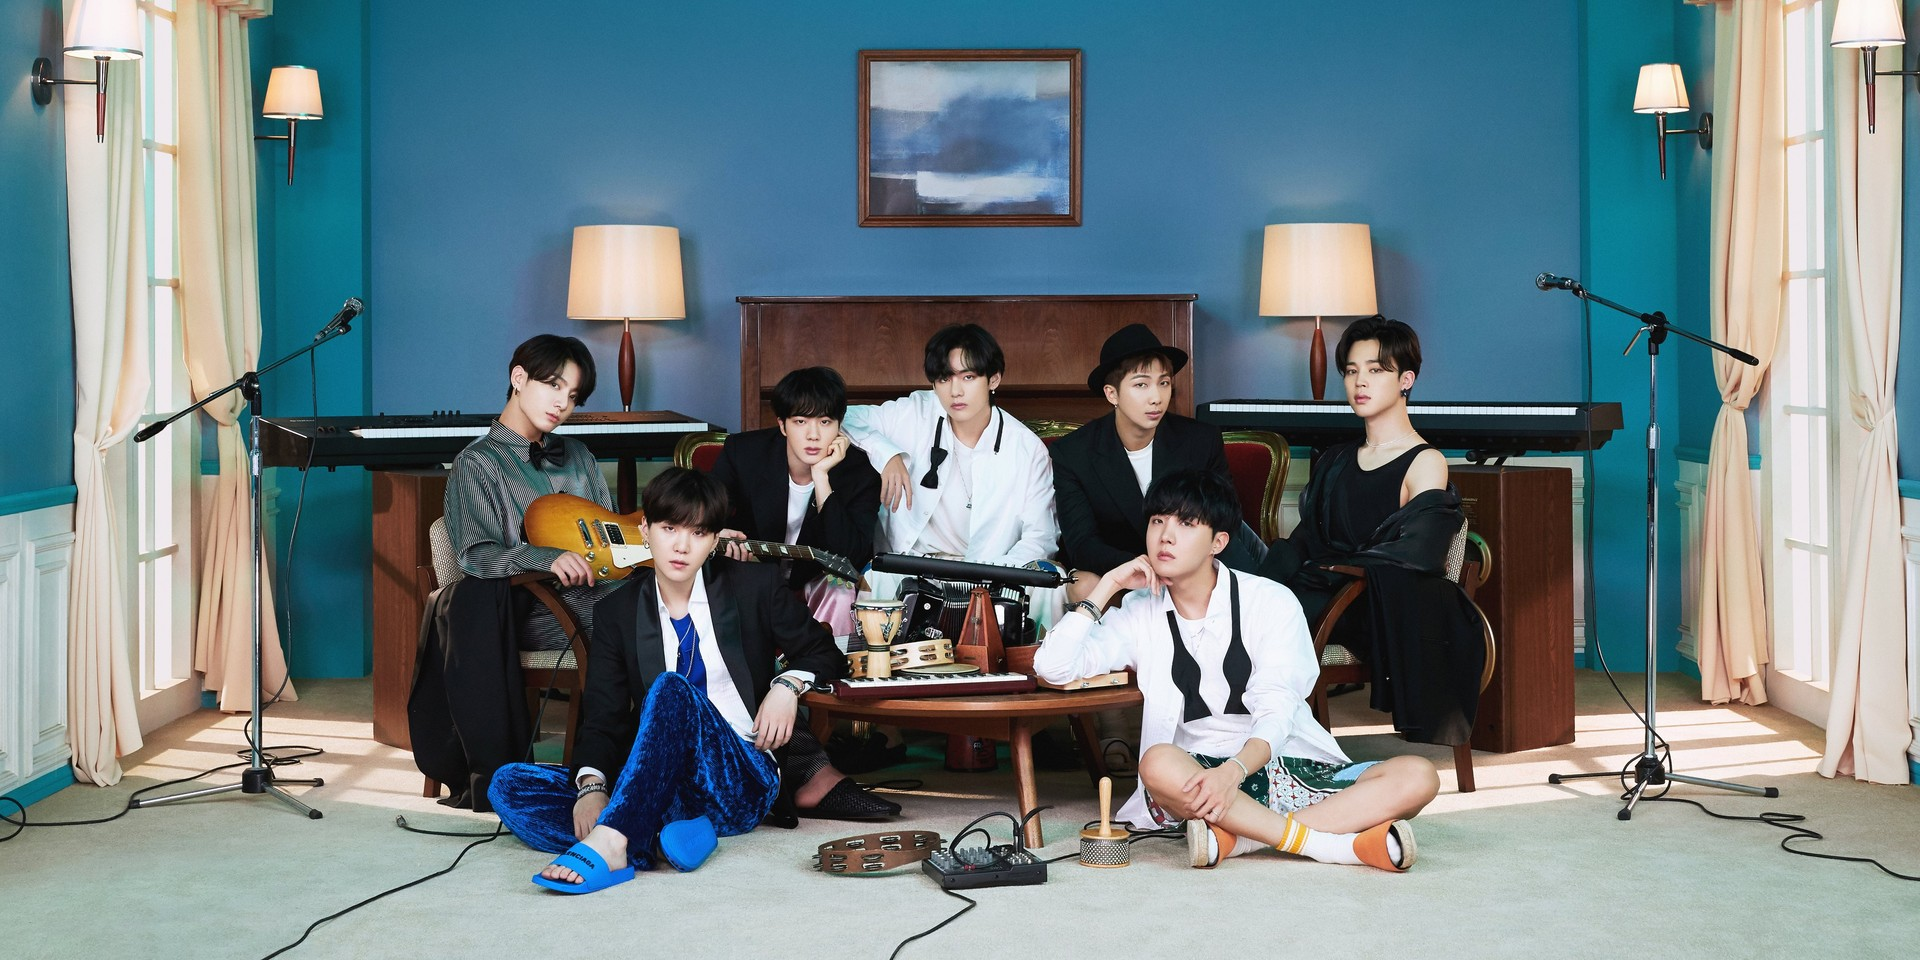 BTS' new album BE debuts at number 1 on the Billboard 200 albums chart